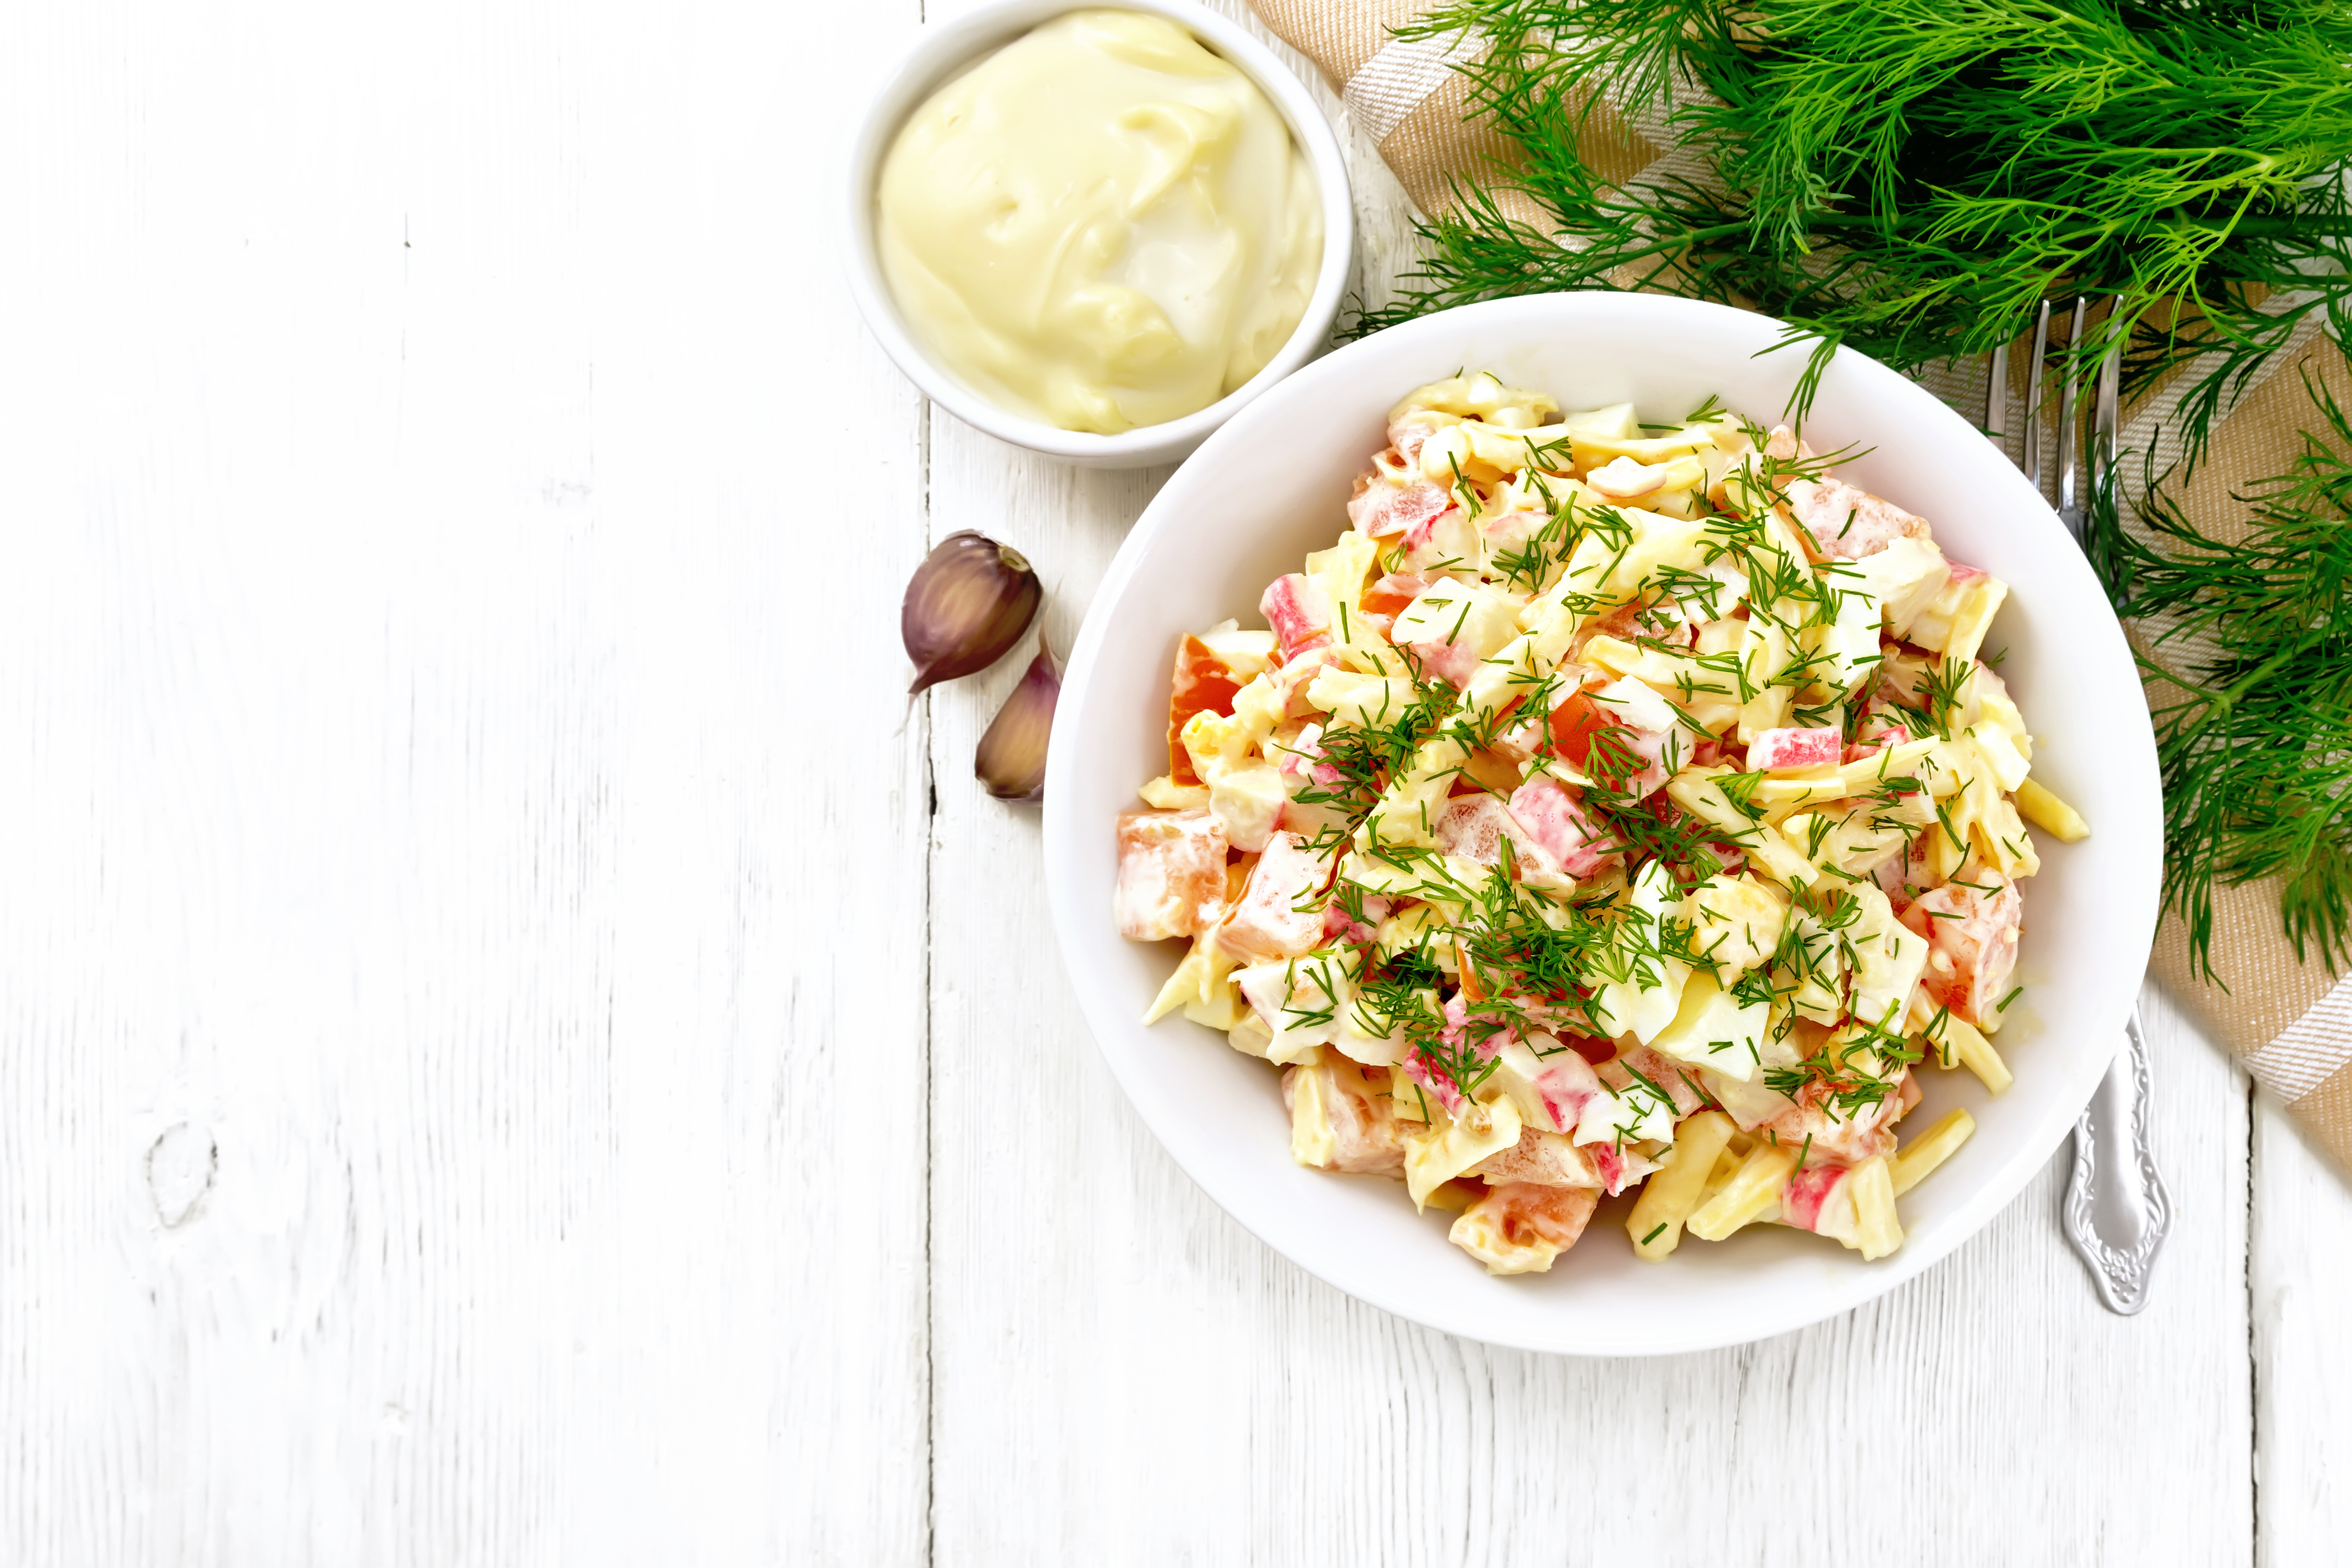 Nutritional Value of Imitation Crab Meat | Healthy Eating